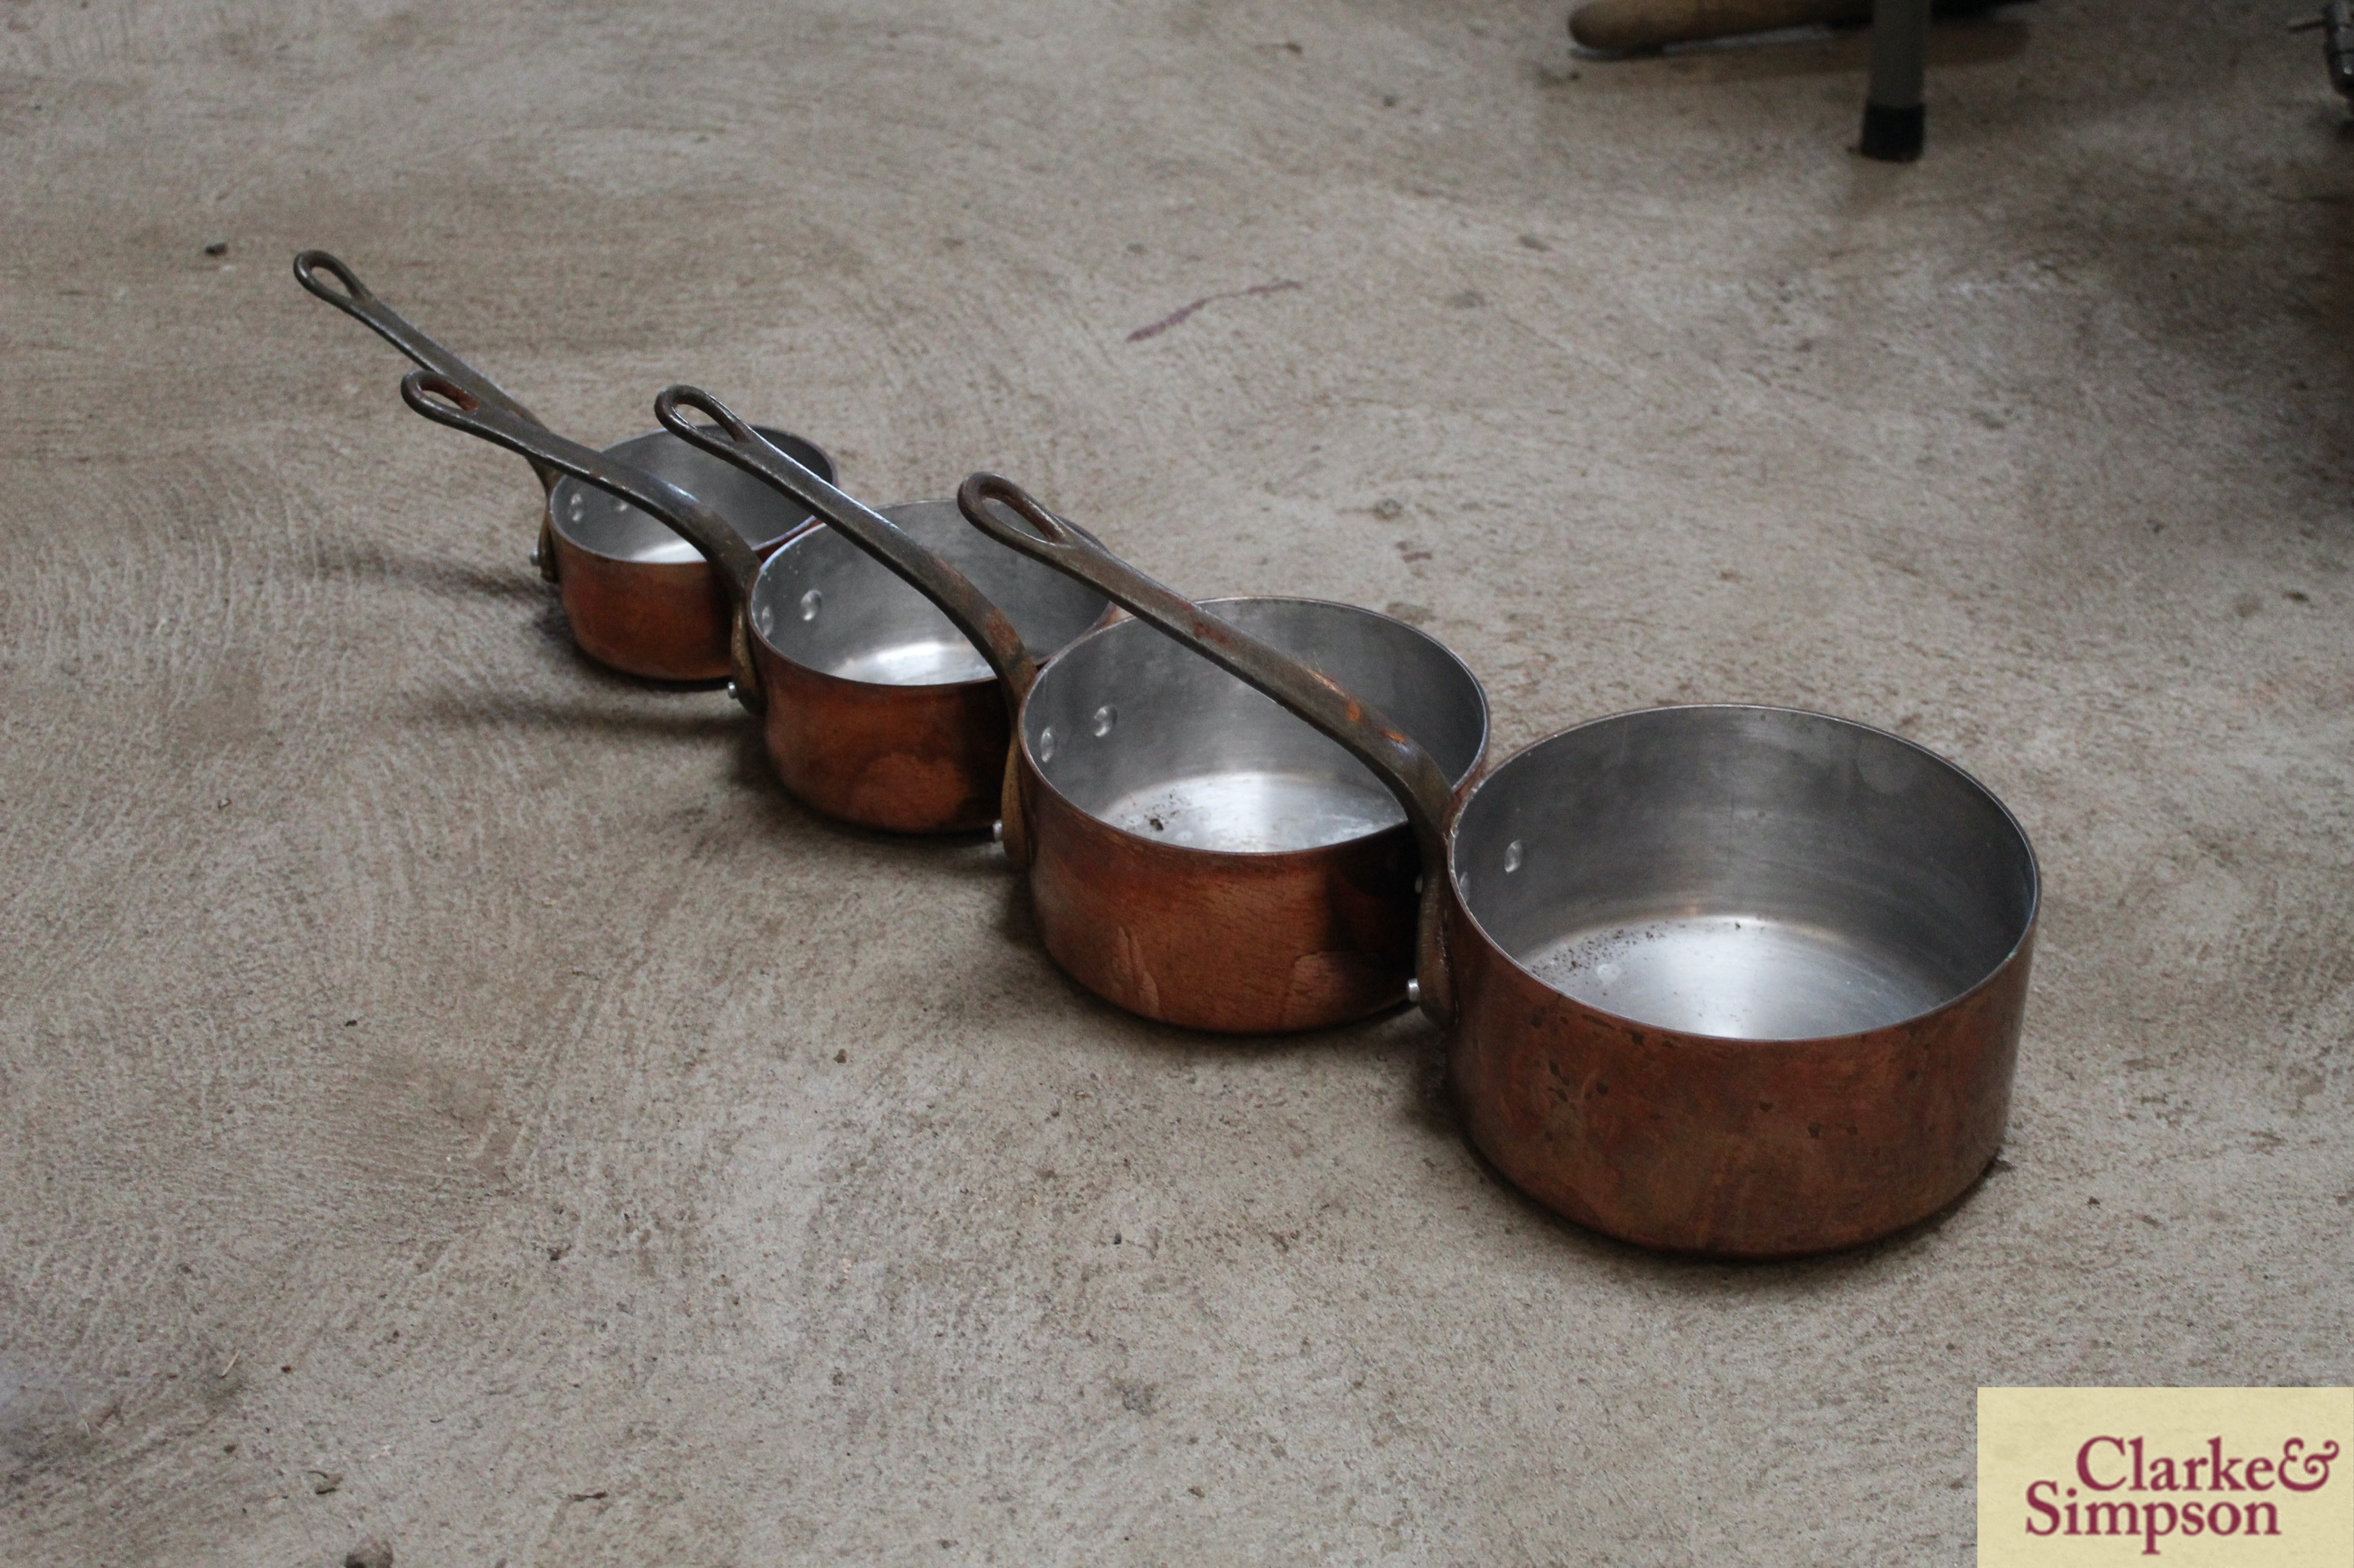 A set of four graduated copper saucepans with iron - Image 2 of 4